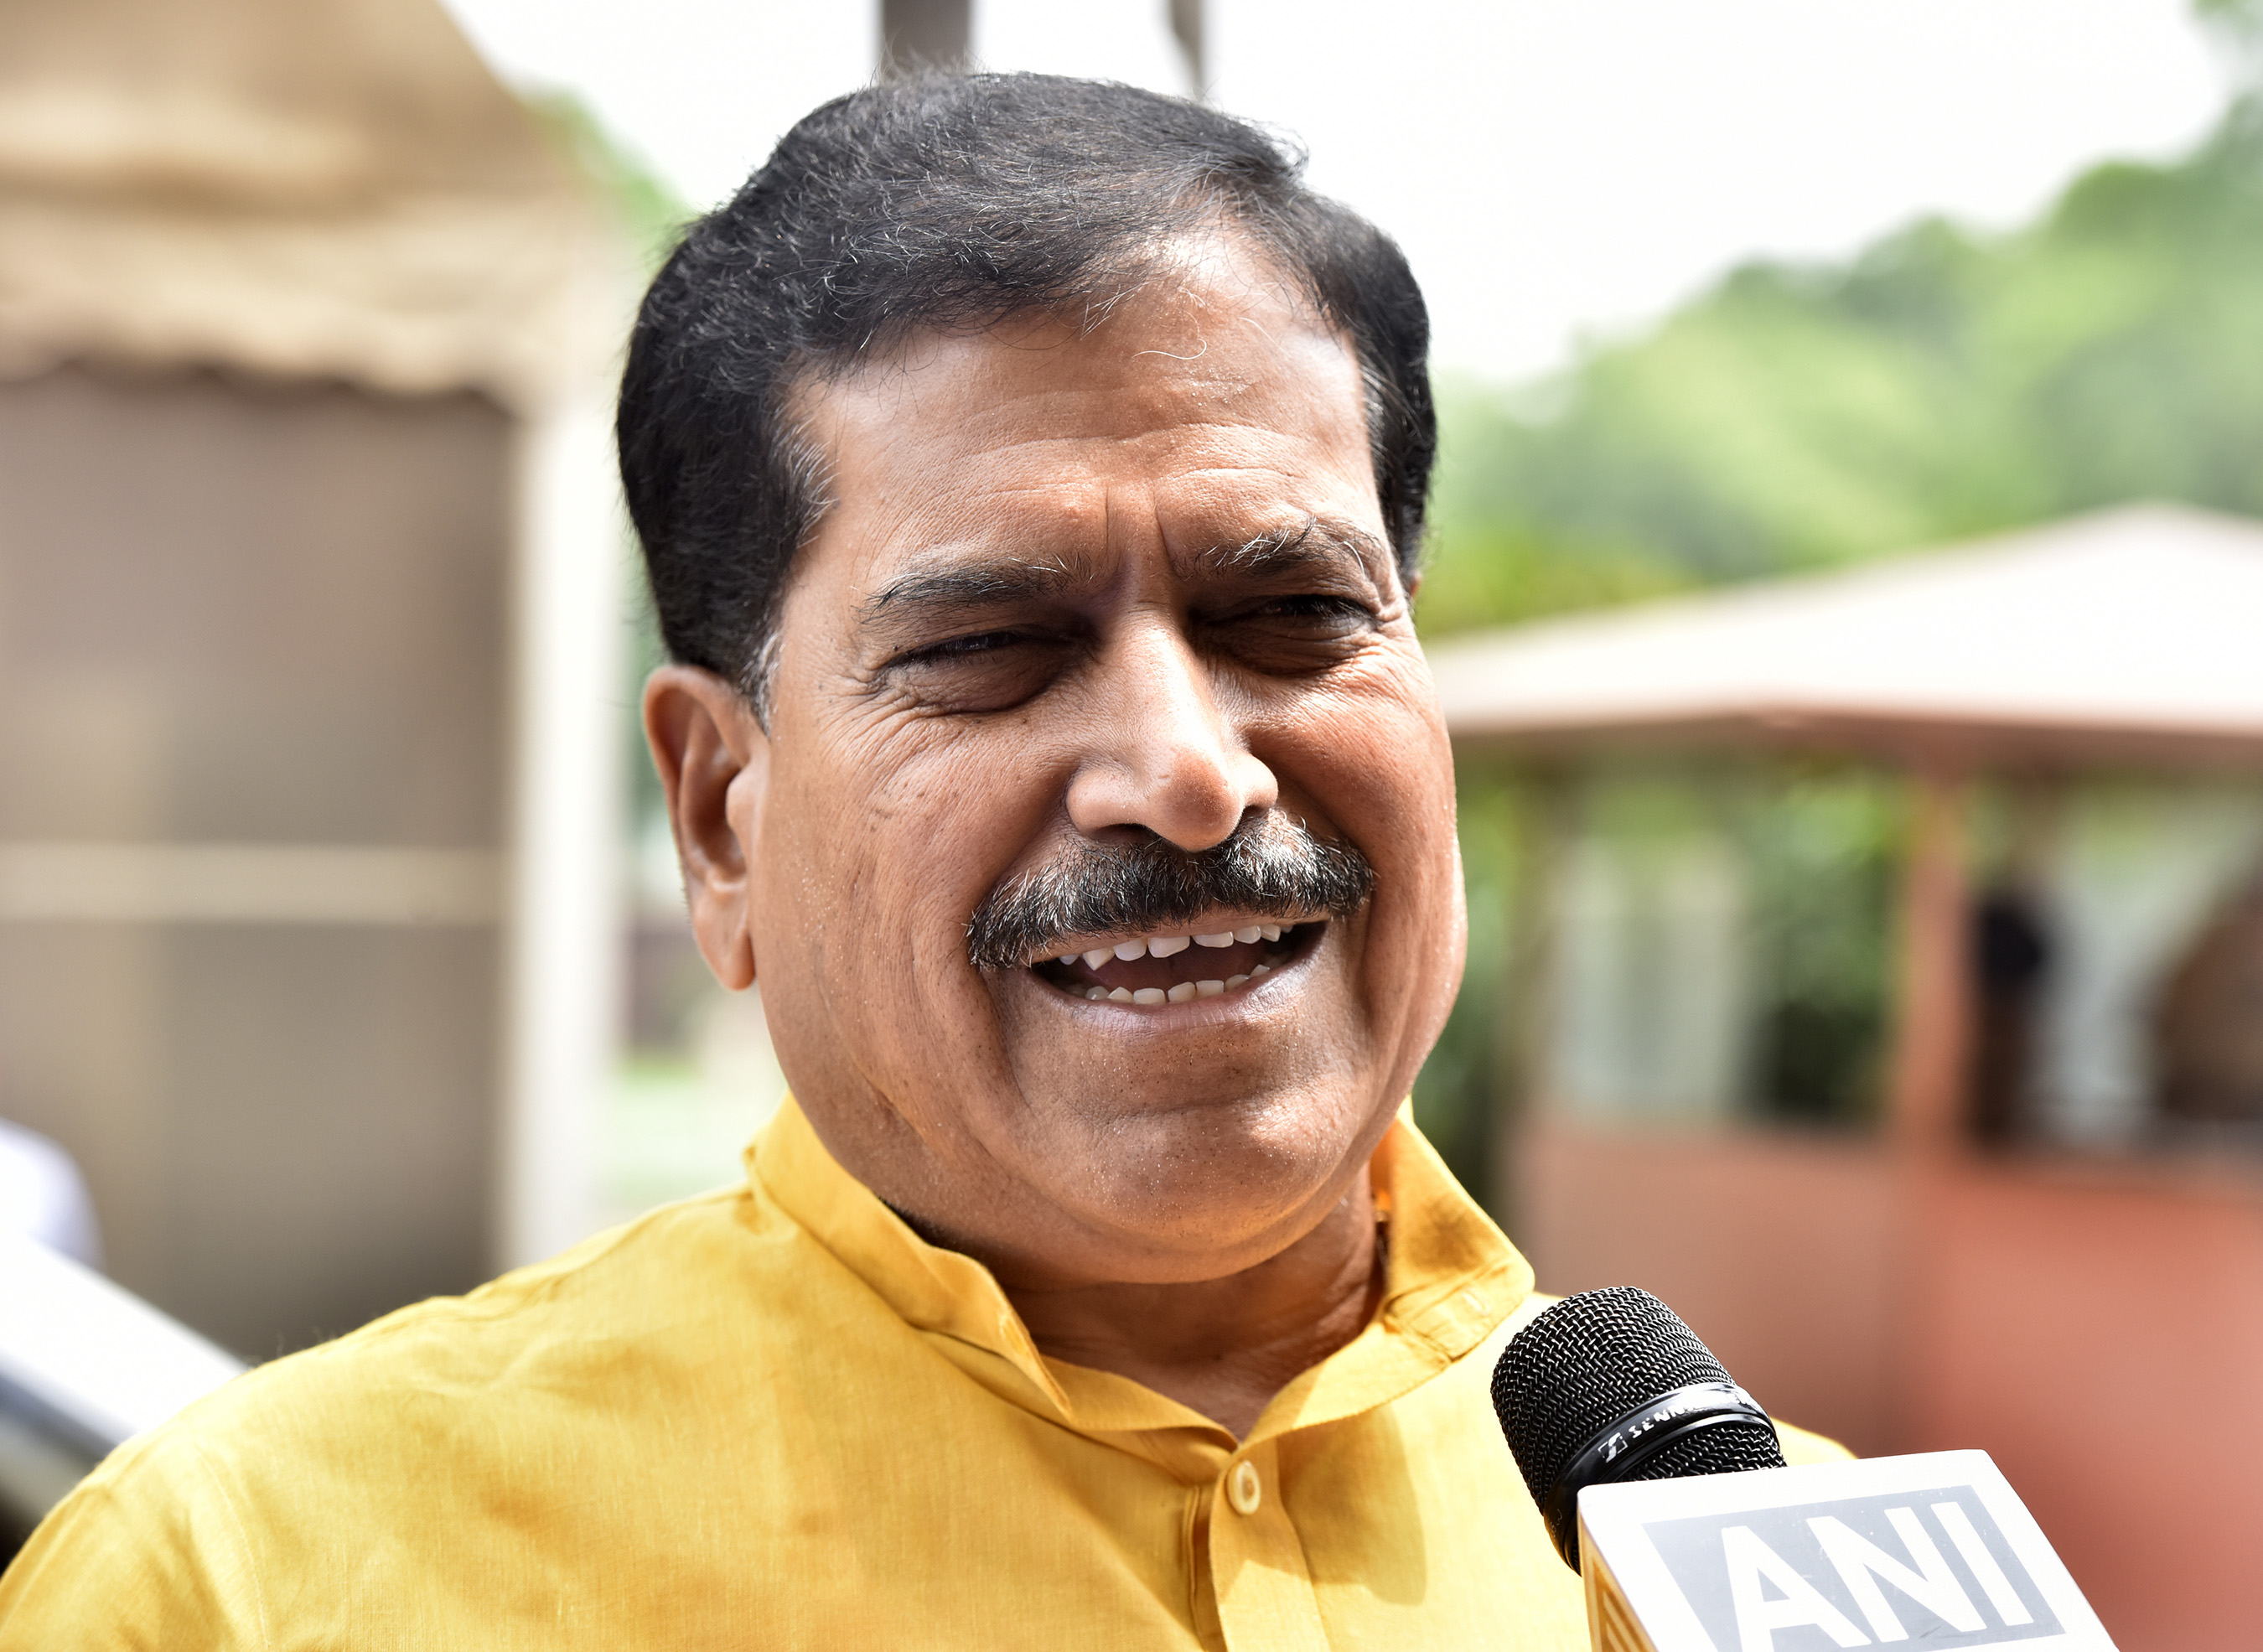 Minister of state Railways Suresh Angadi on July 8, 2019 in New Delhi, India.